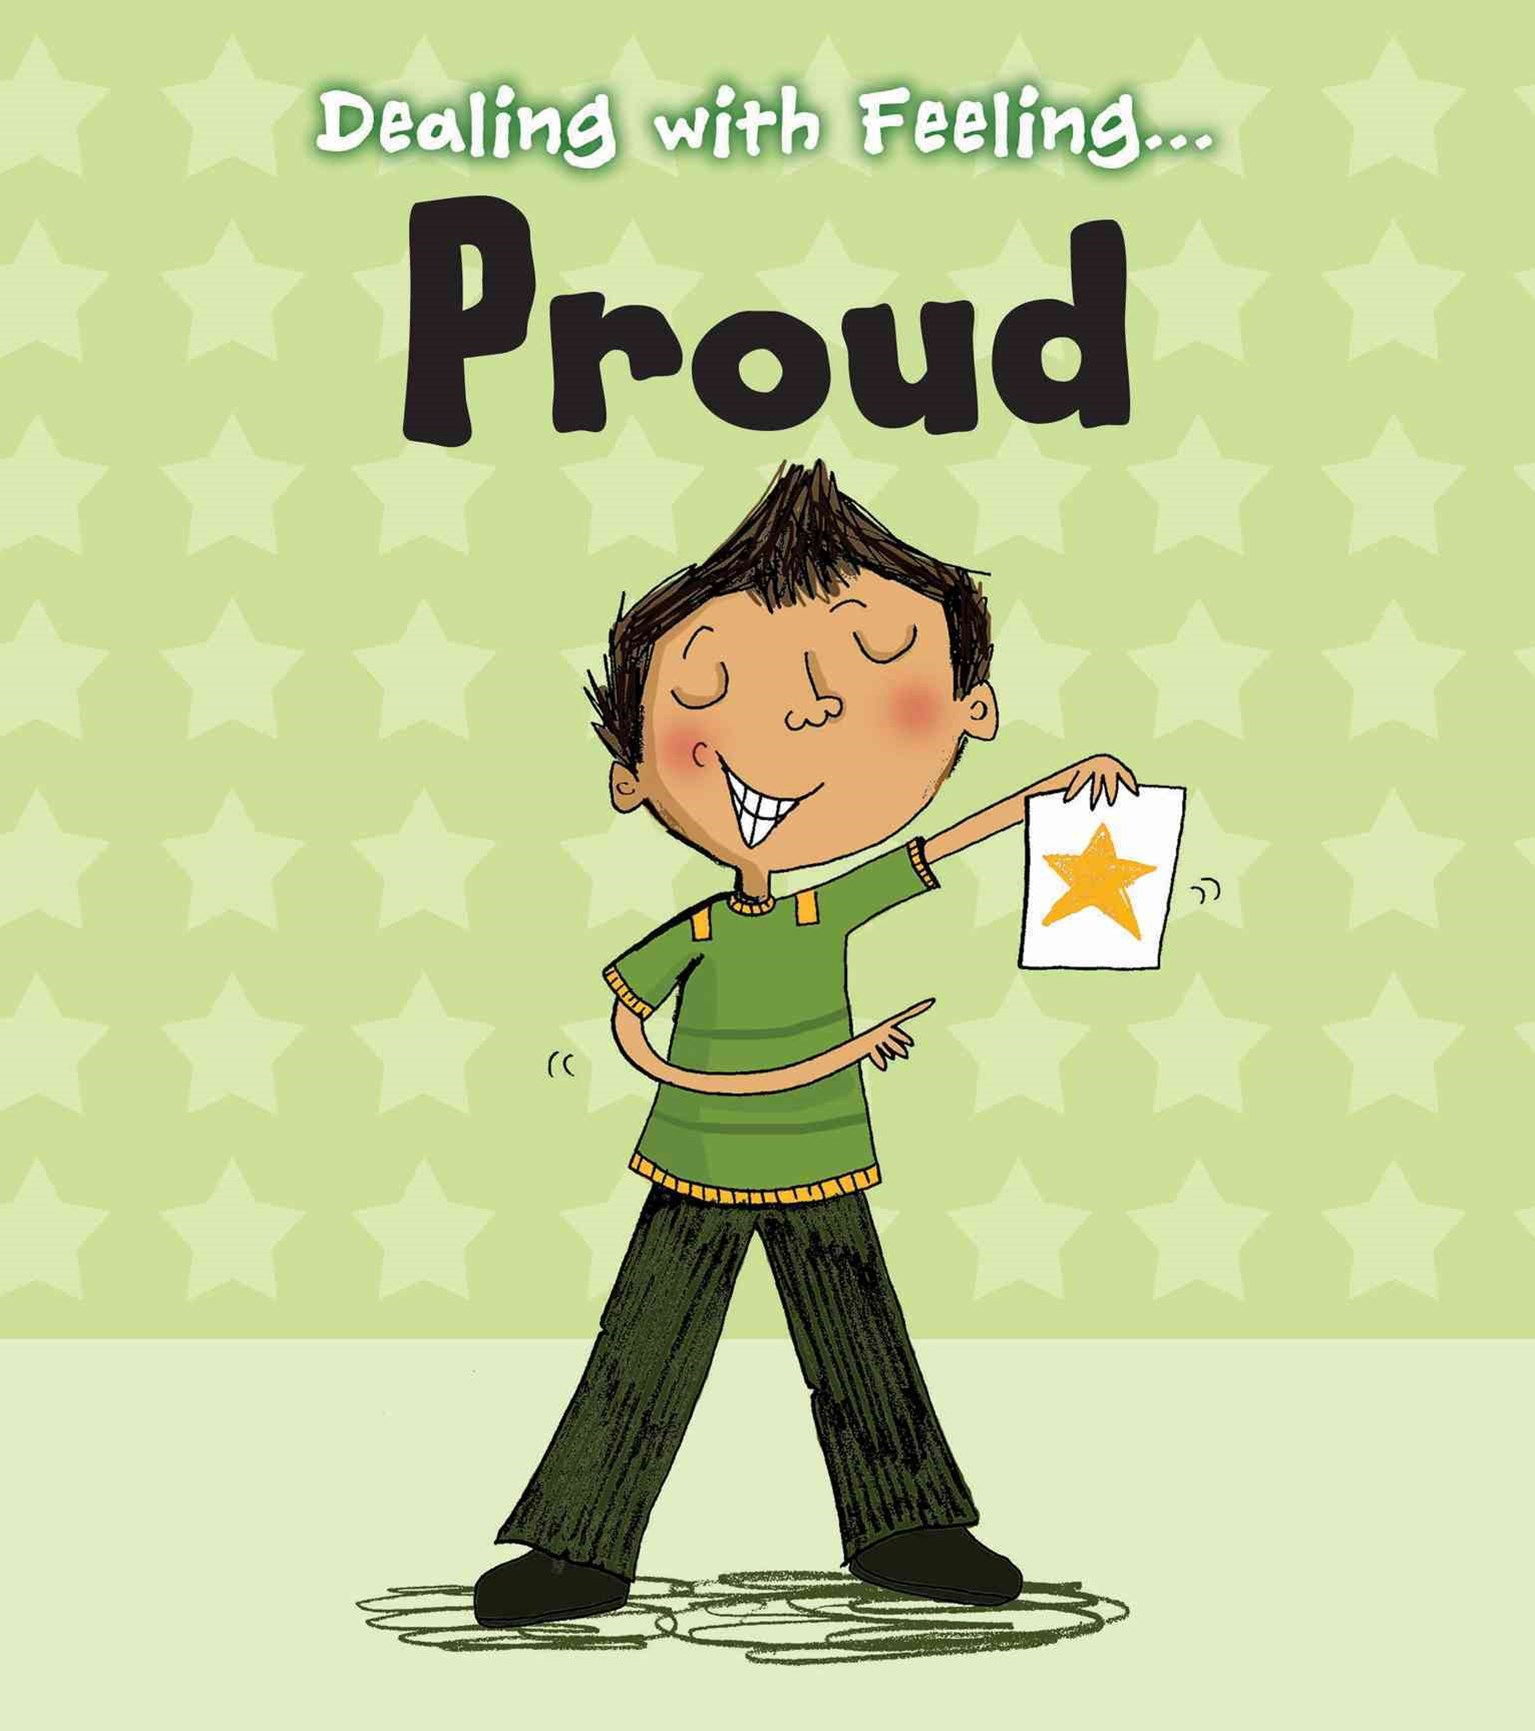 Dealing with Feeling... Proud